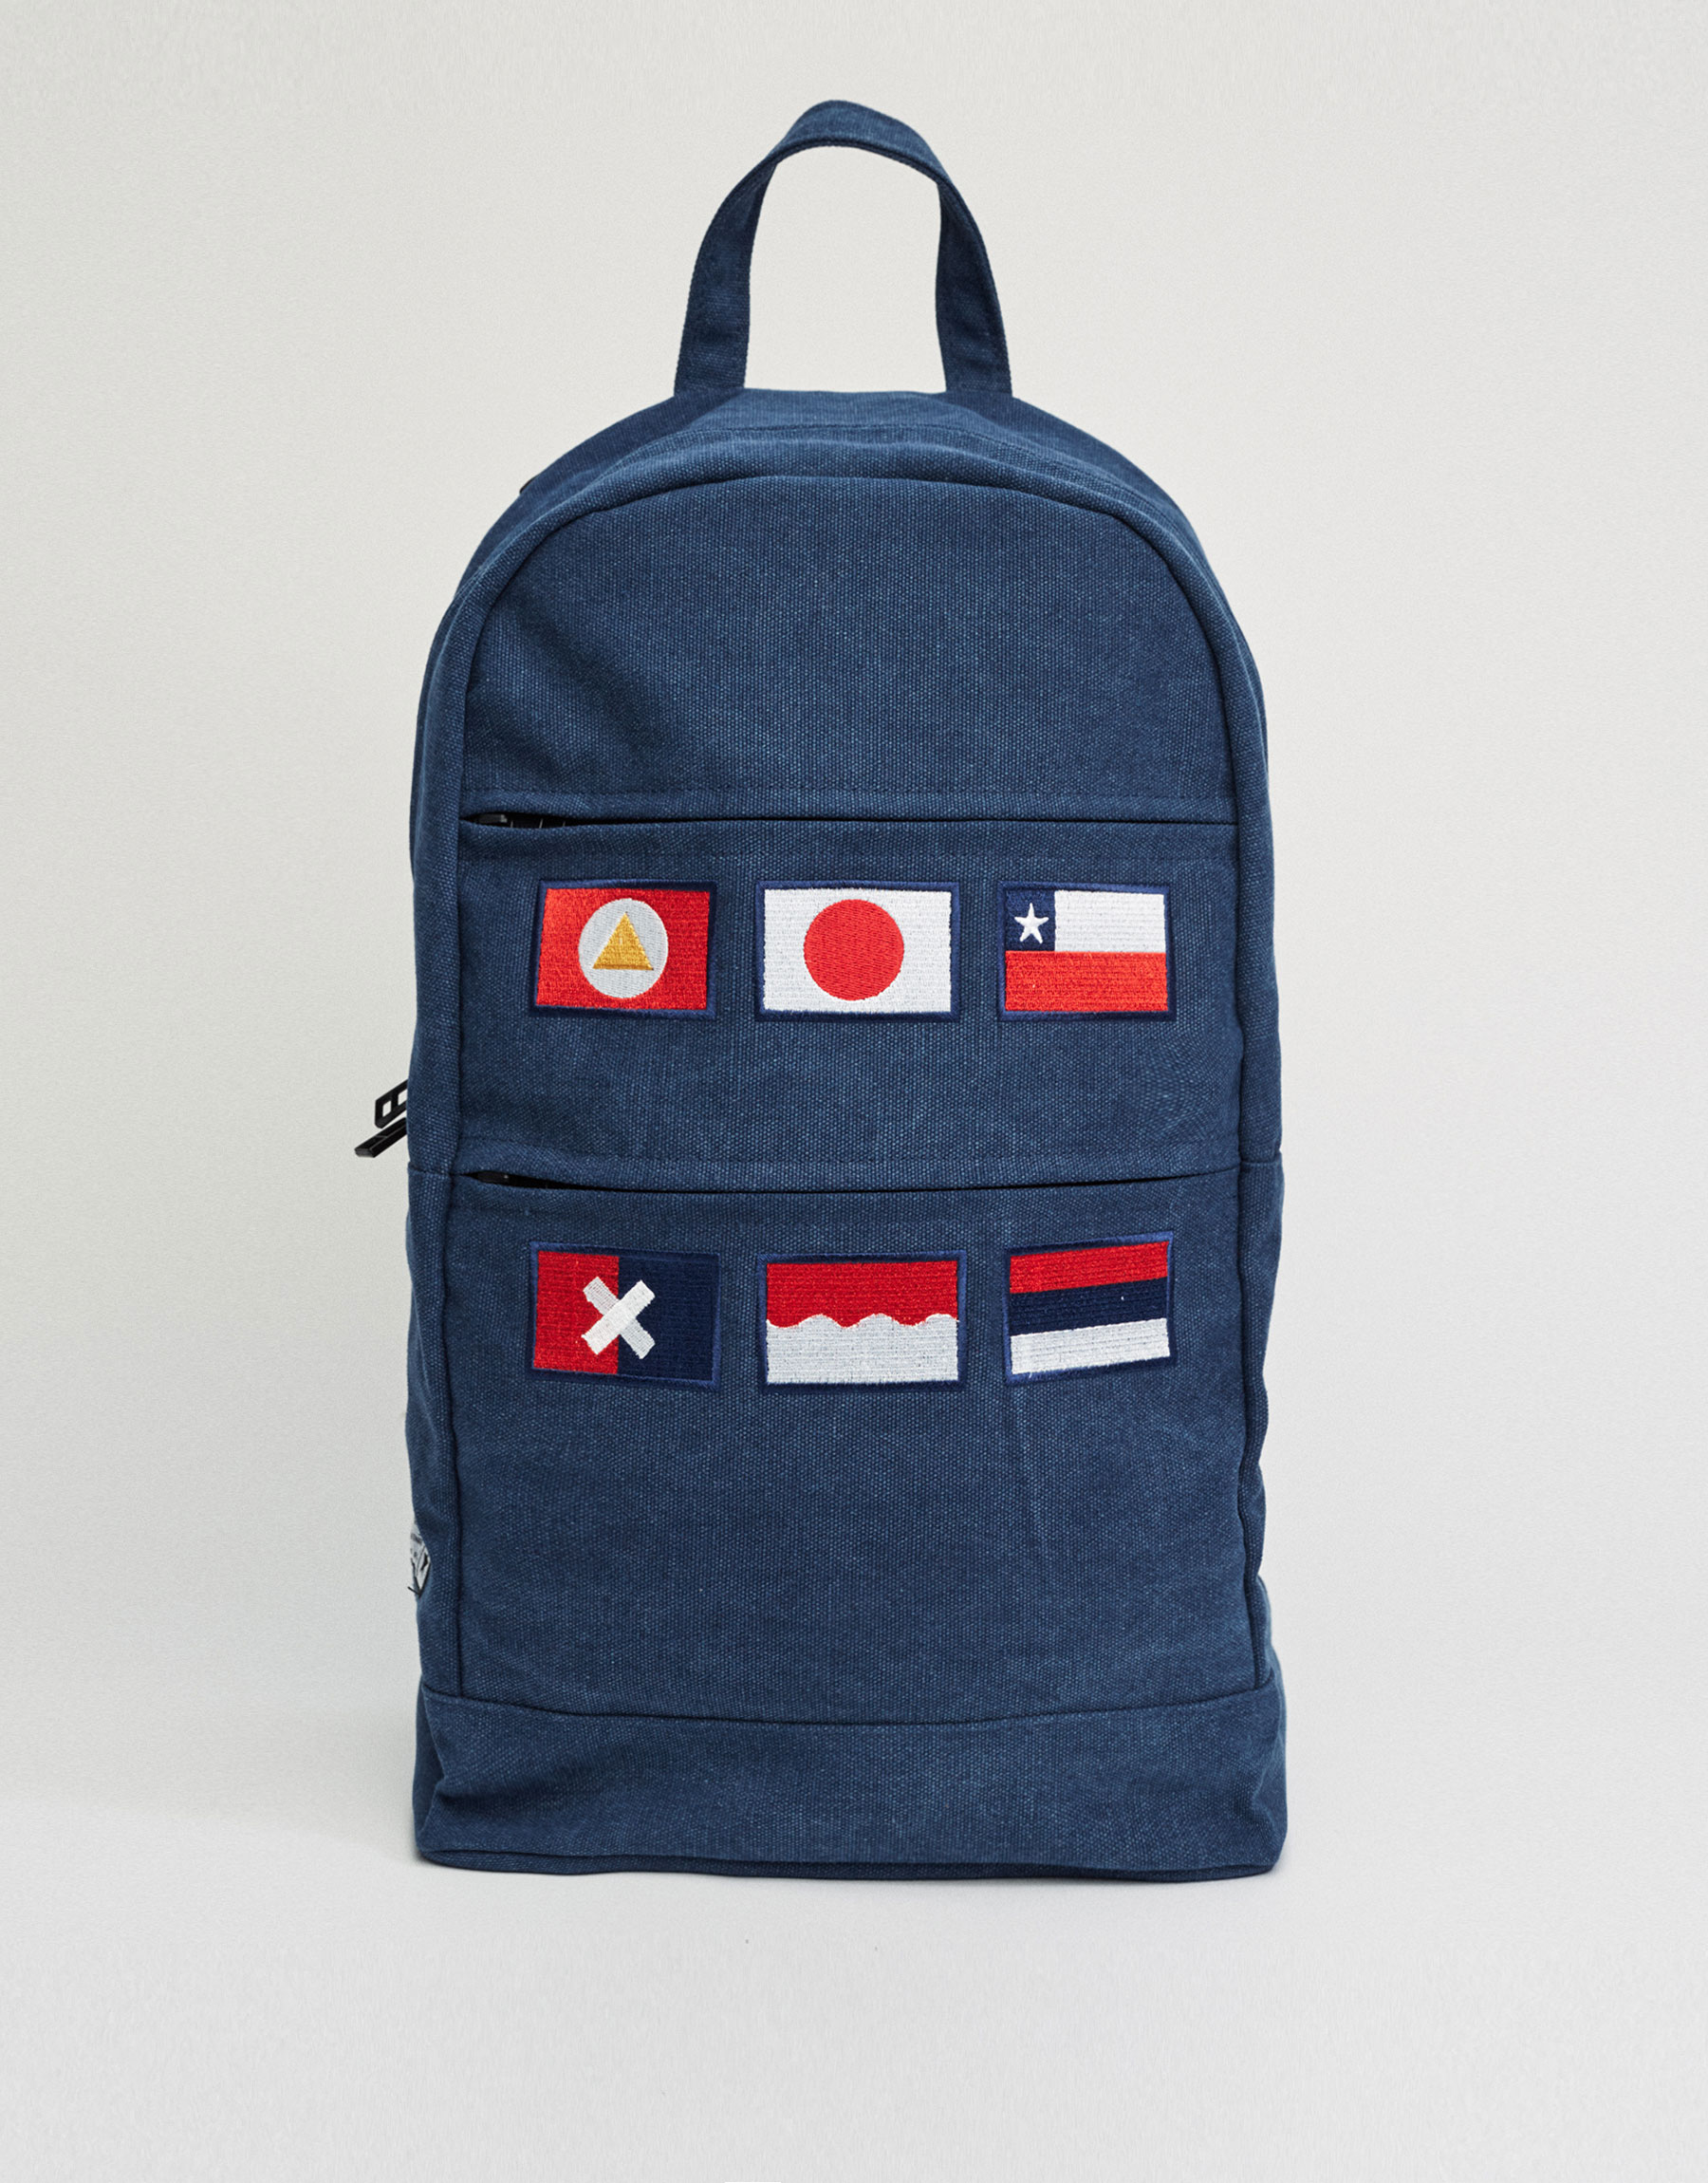 Backpack with patches on front